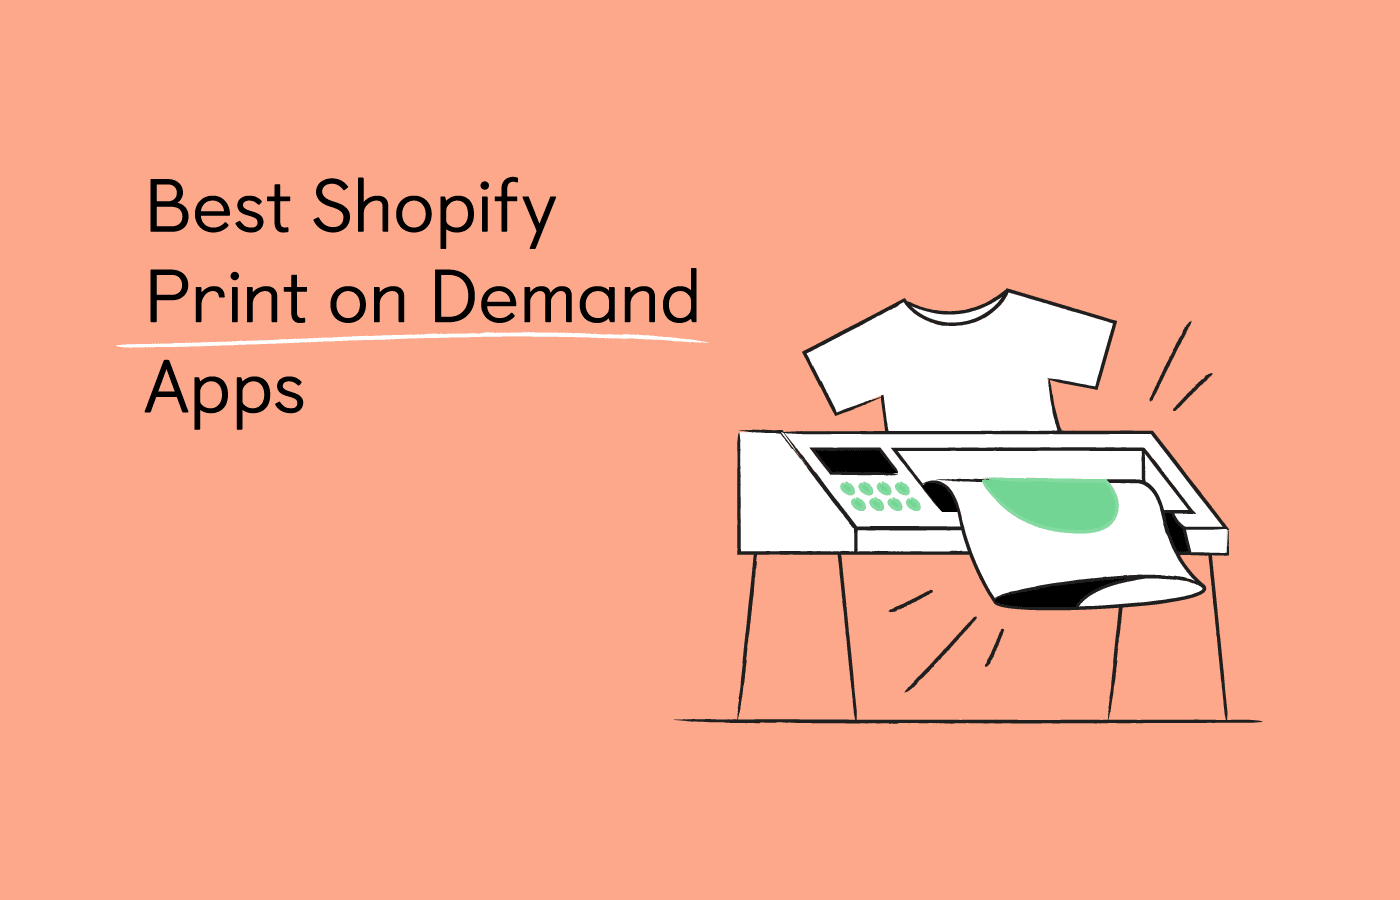 15 Shopify Print on Demand Apps to Use in 2021